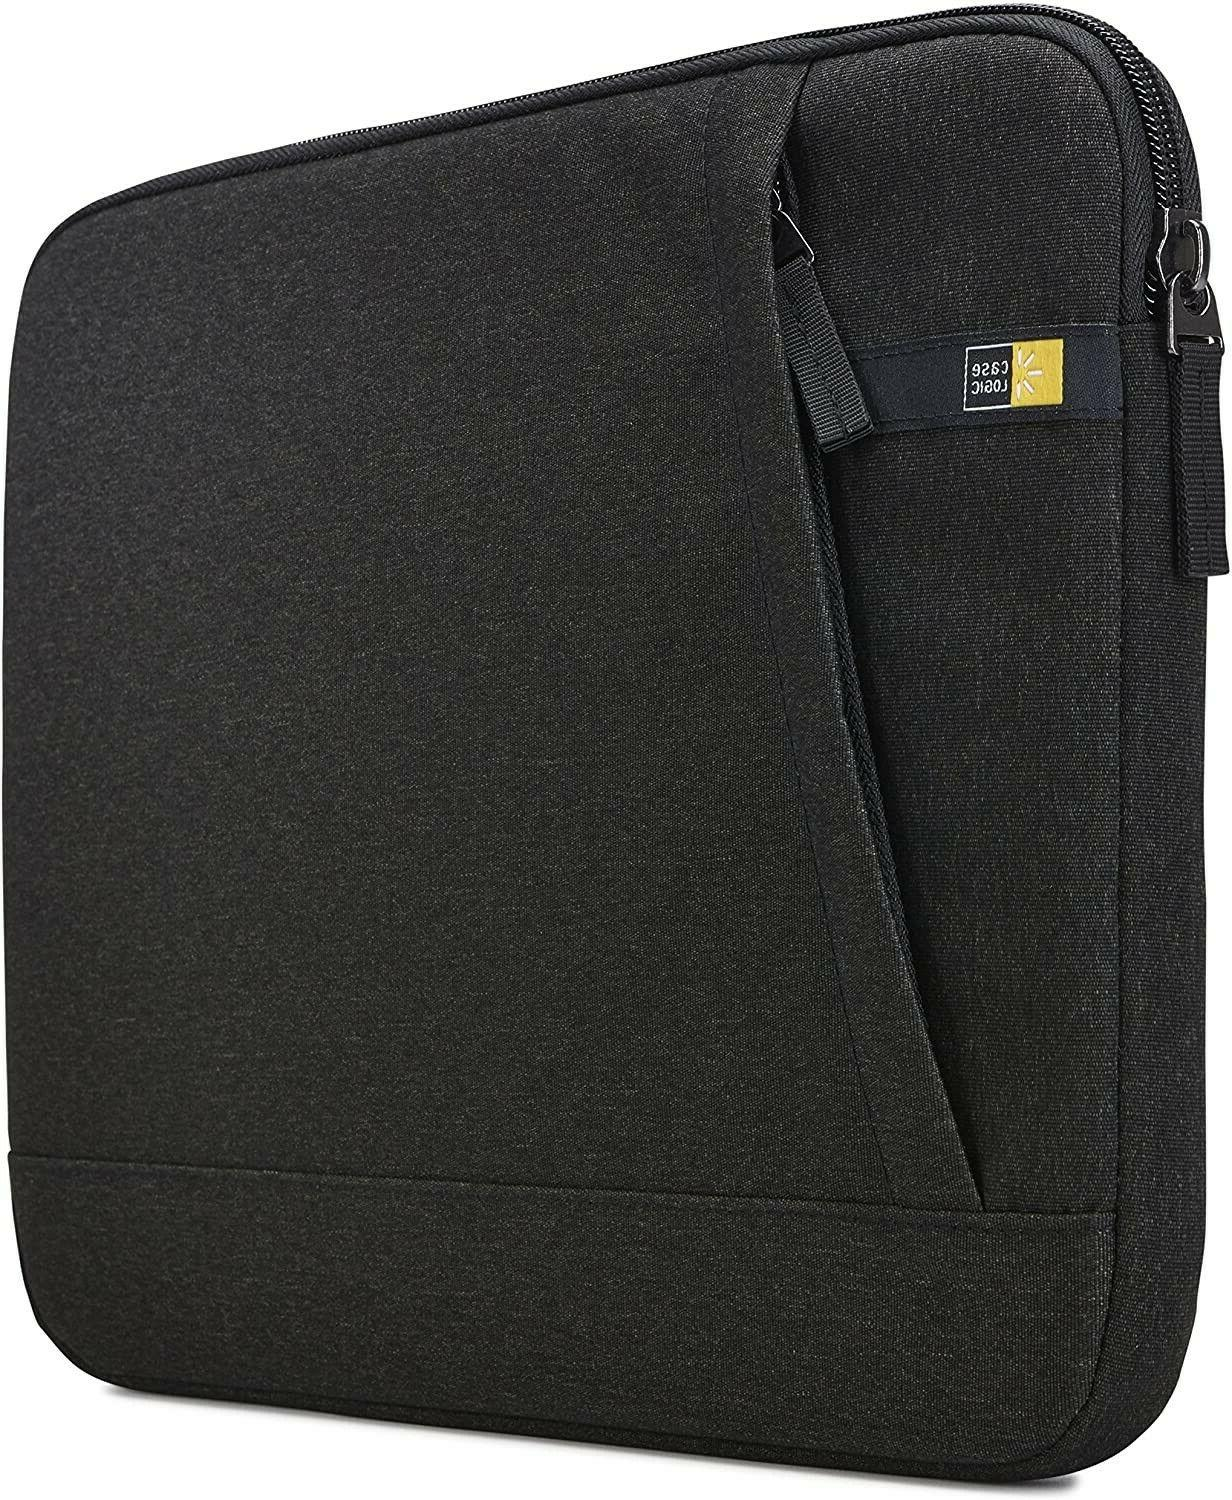 huxton13 3 laptop sleeve huxs 113blk black